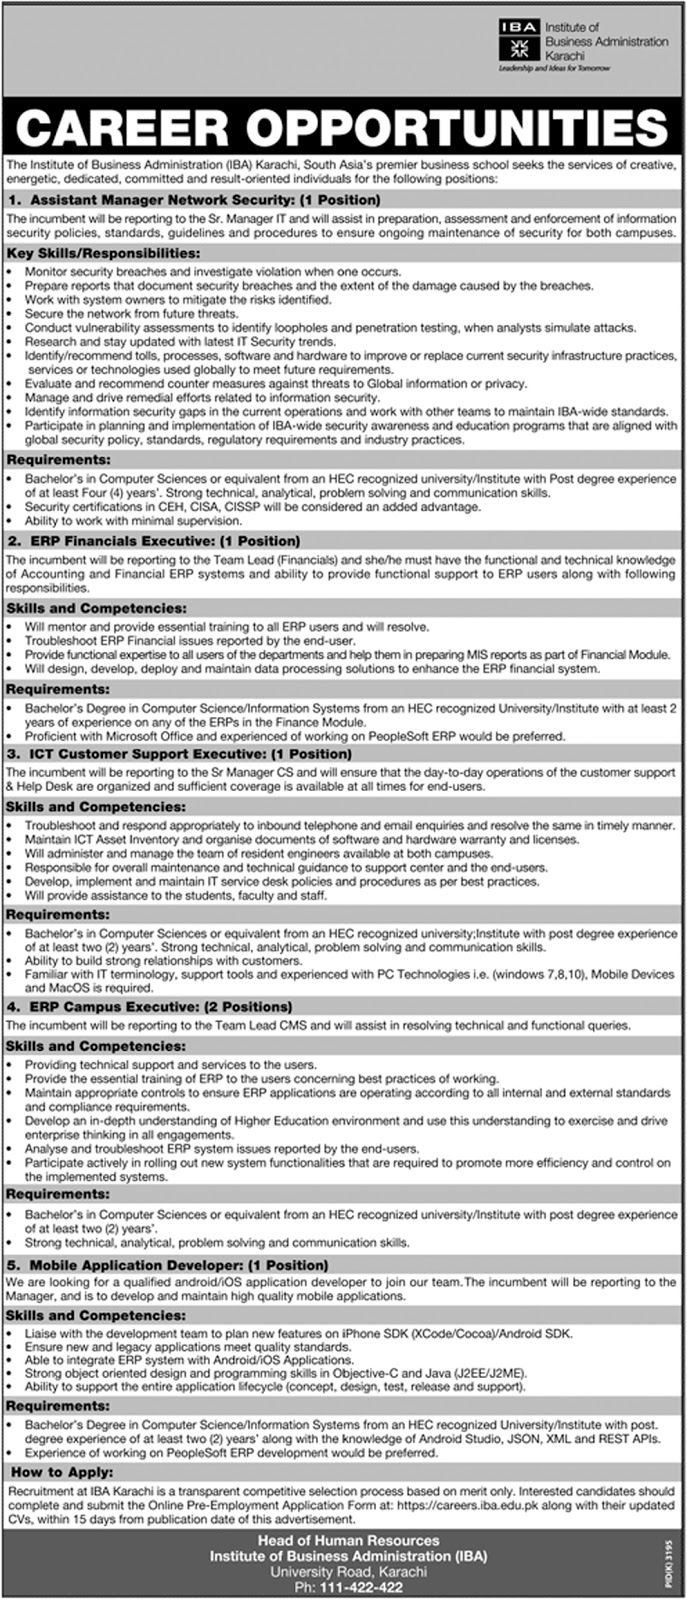 Institute Of Business Administration IBA jobs Feb 2018